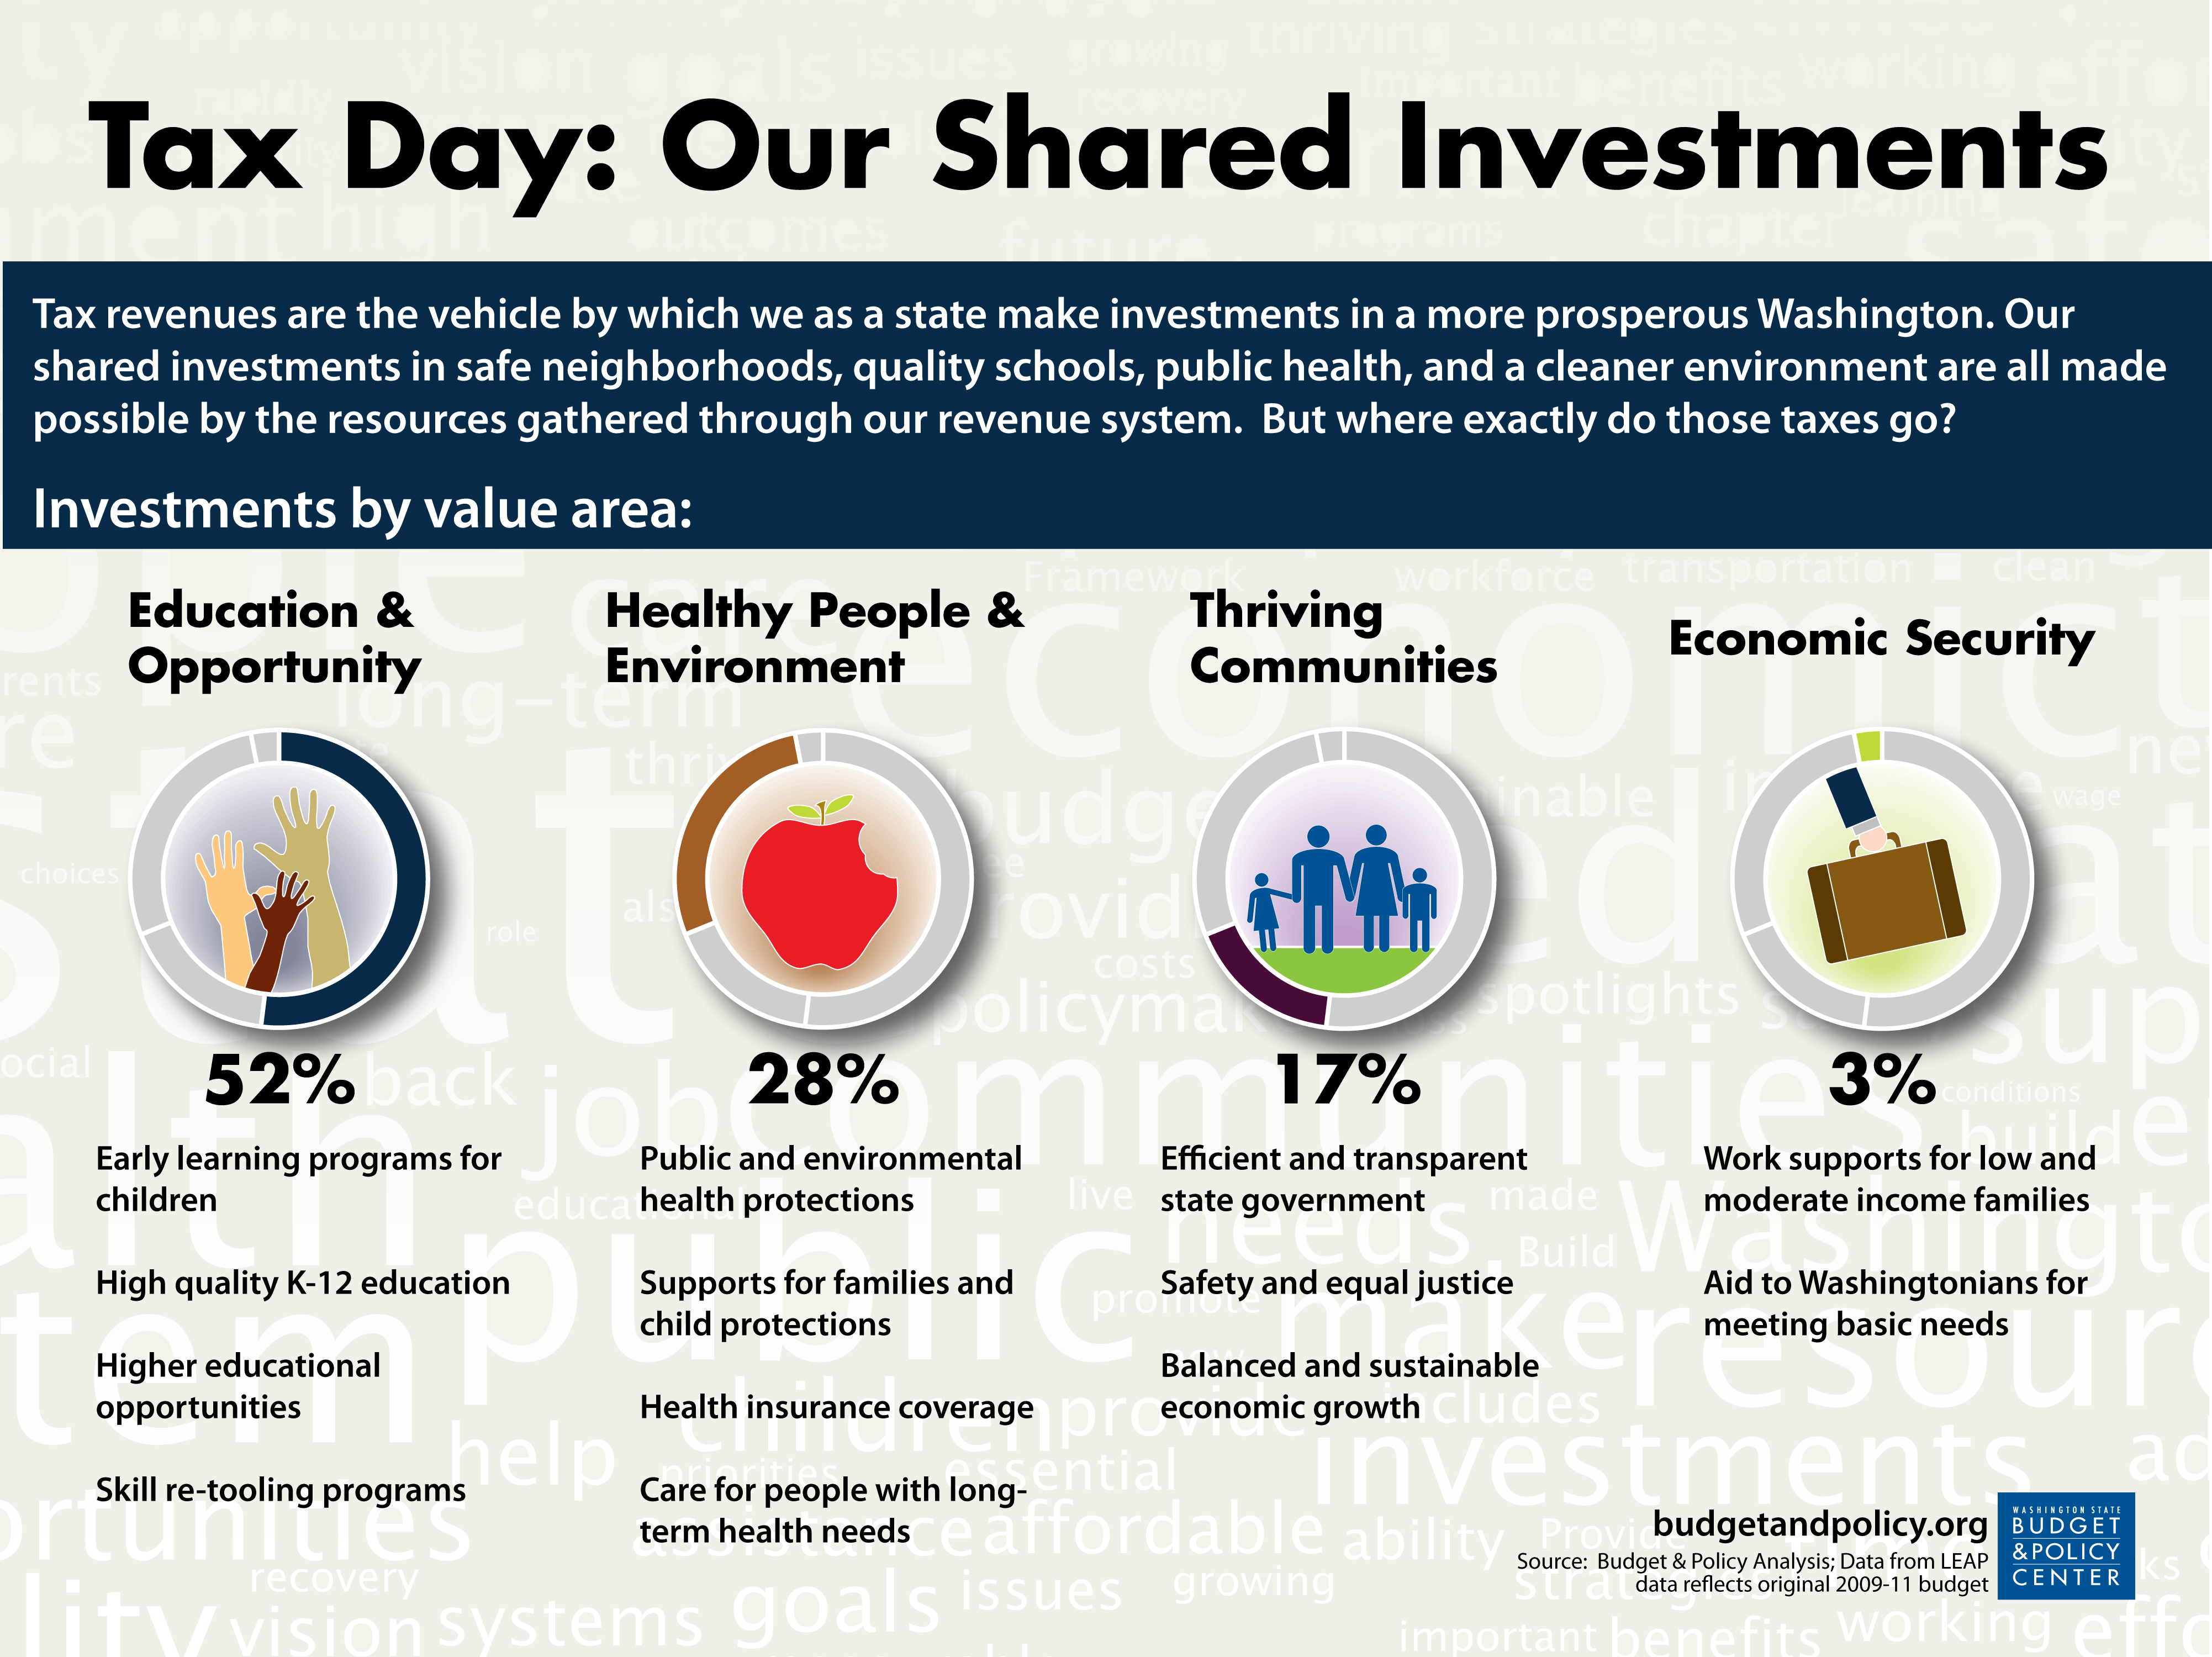 Tax Day: Our Shared Investments